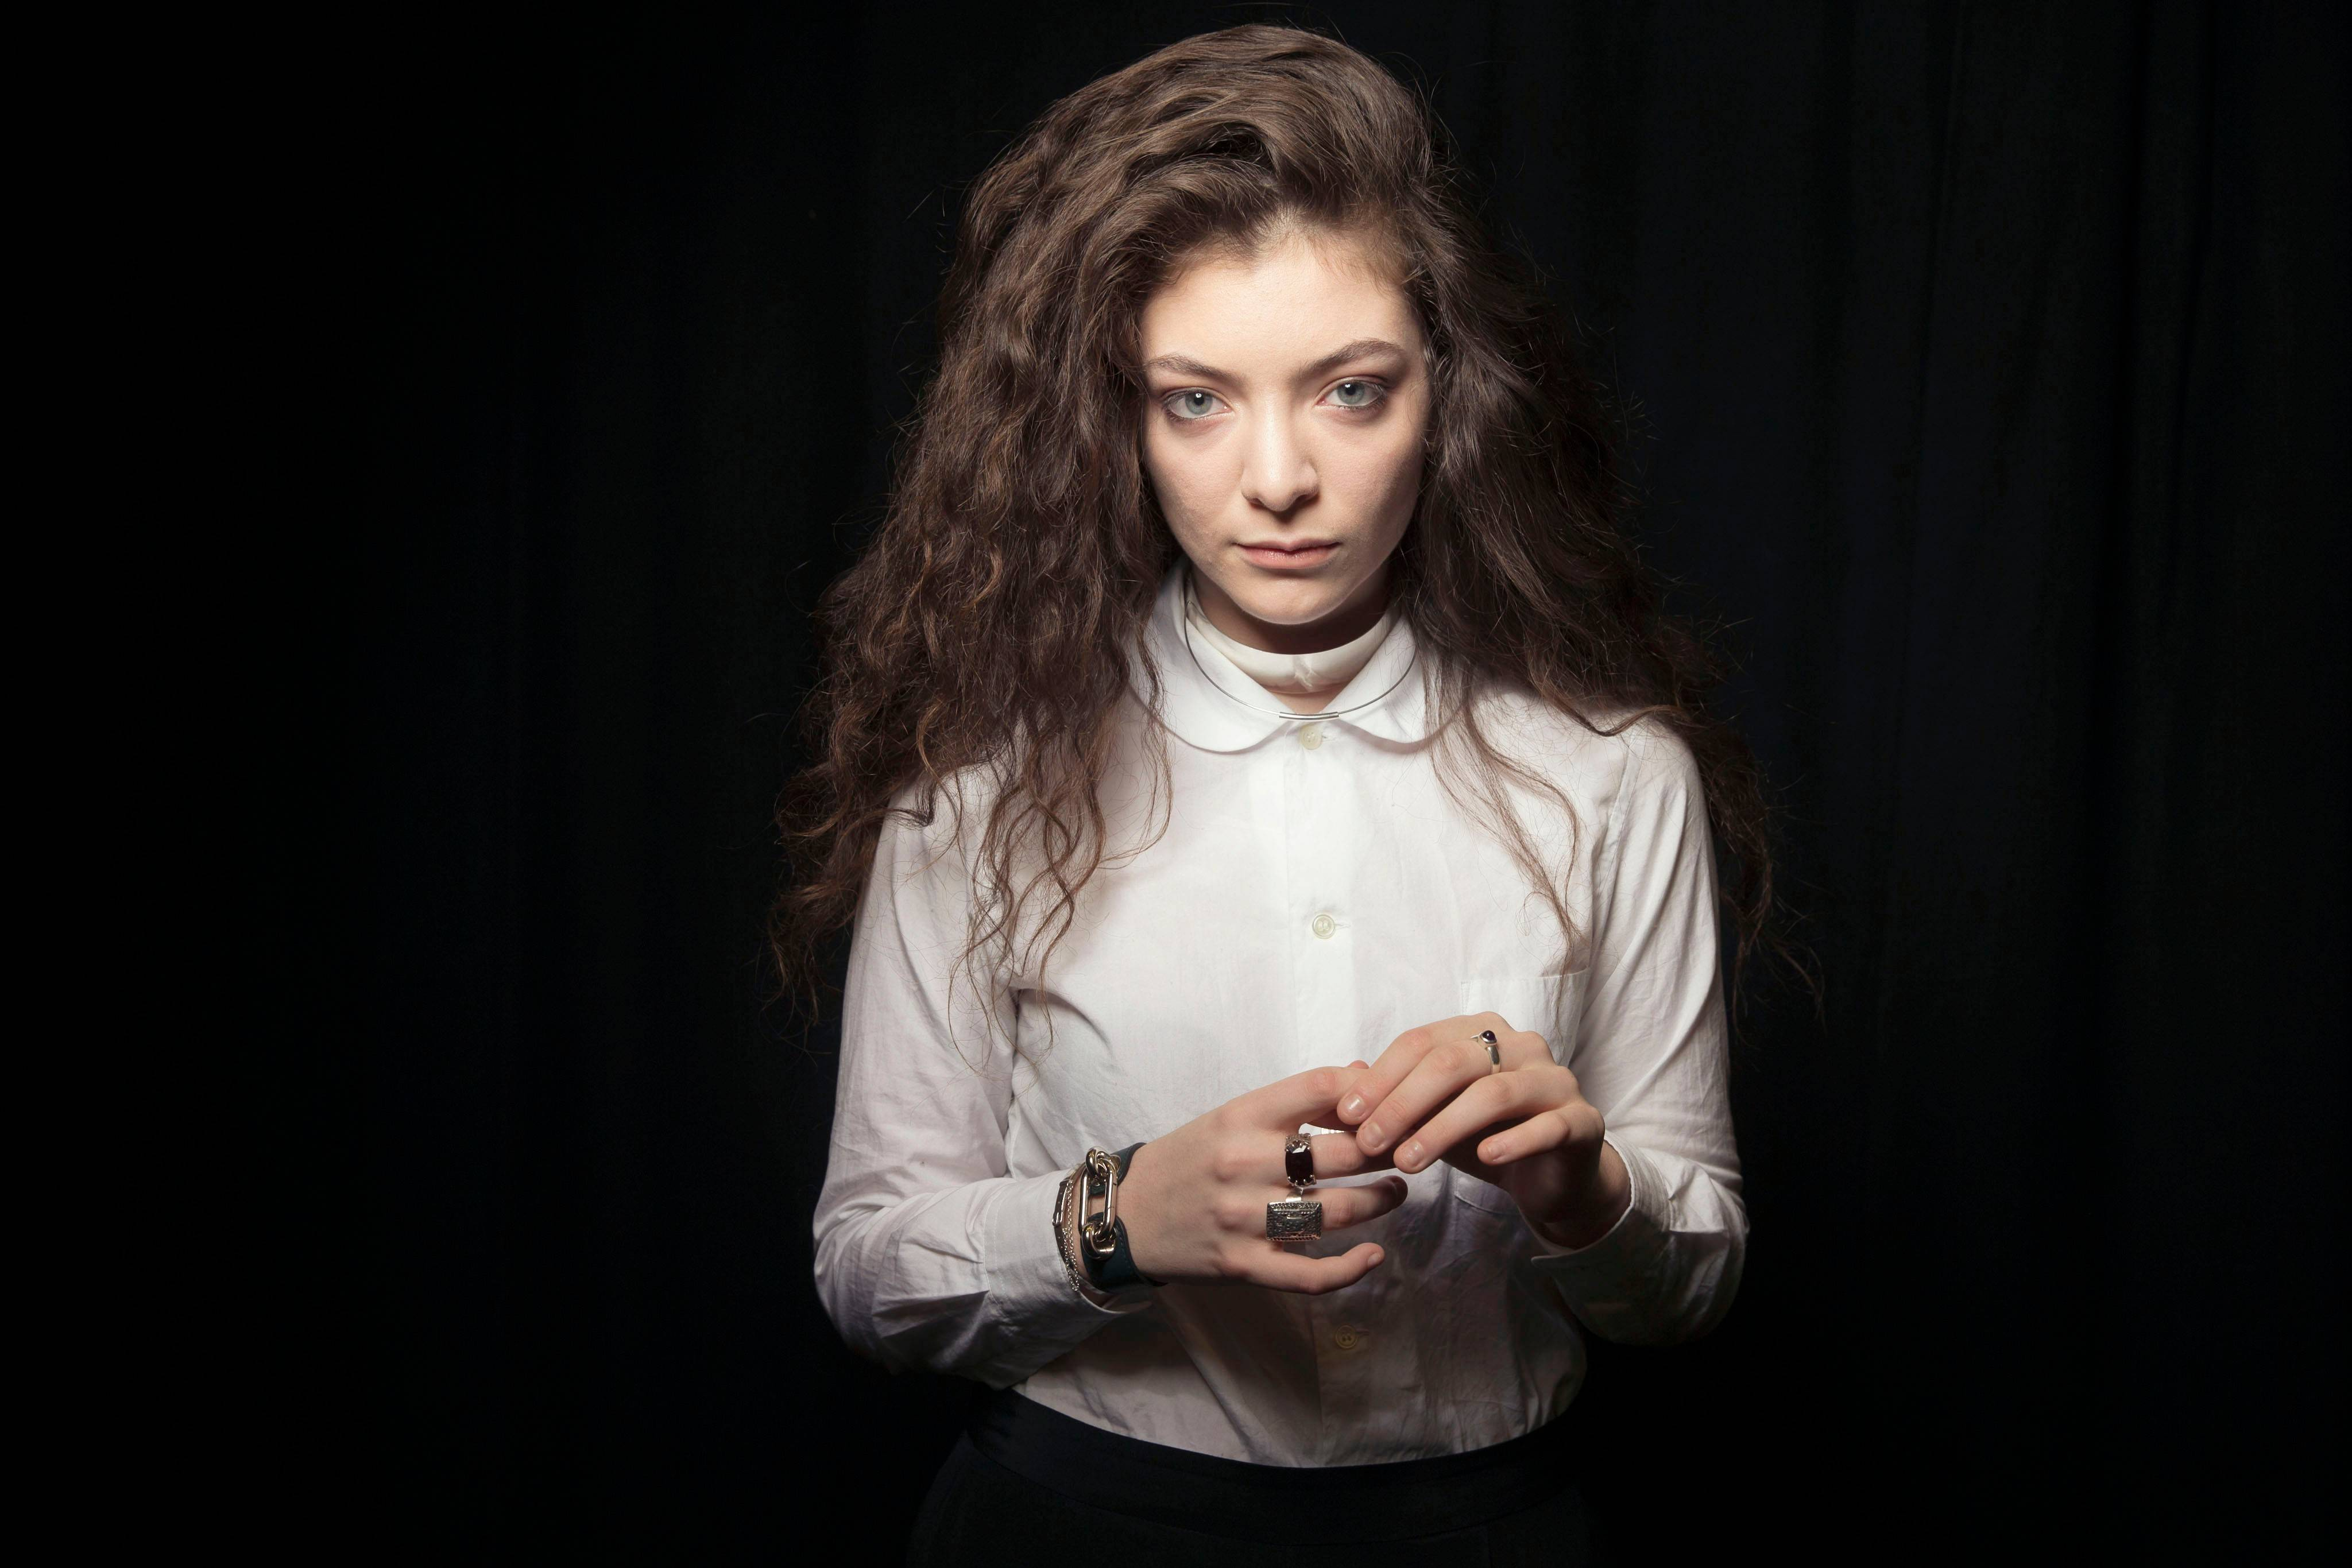 New Zealand singer Lorde is among the top contenders at next month's Billboard Music Awards.